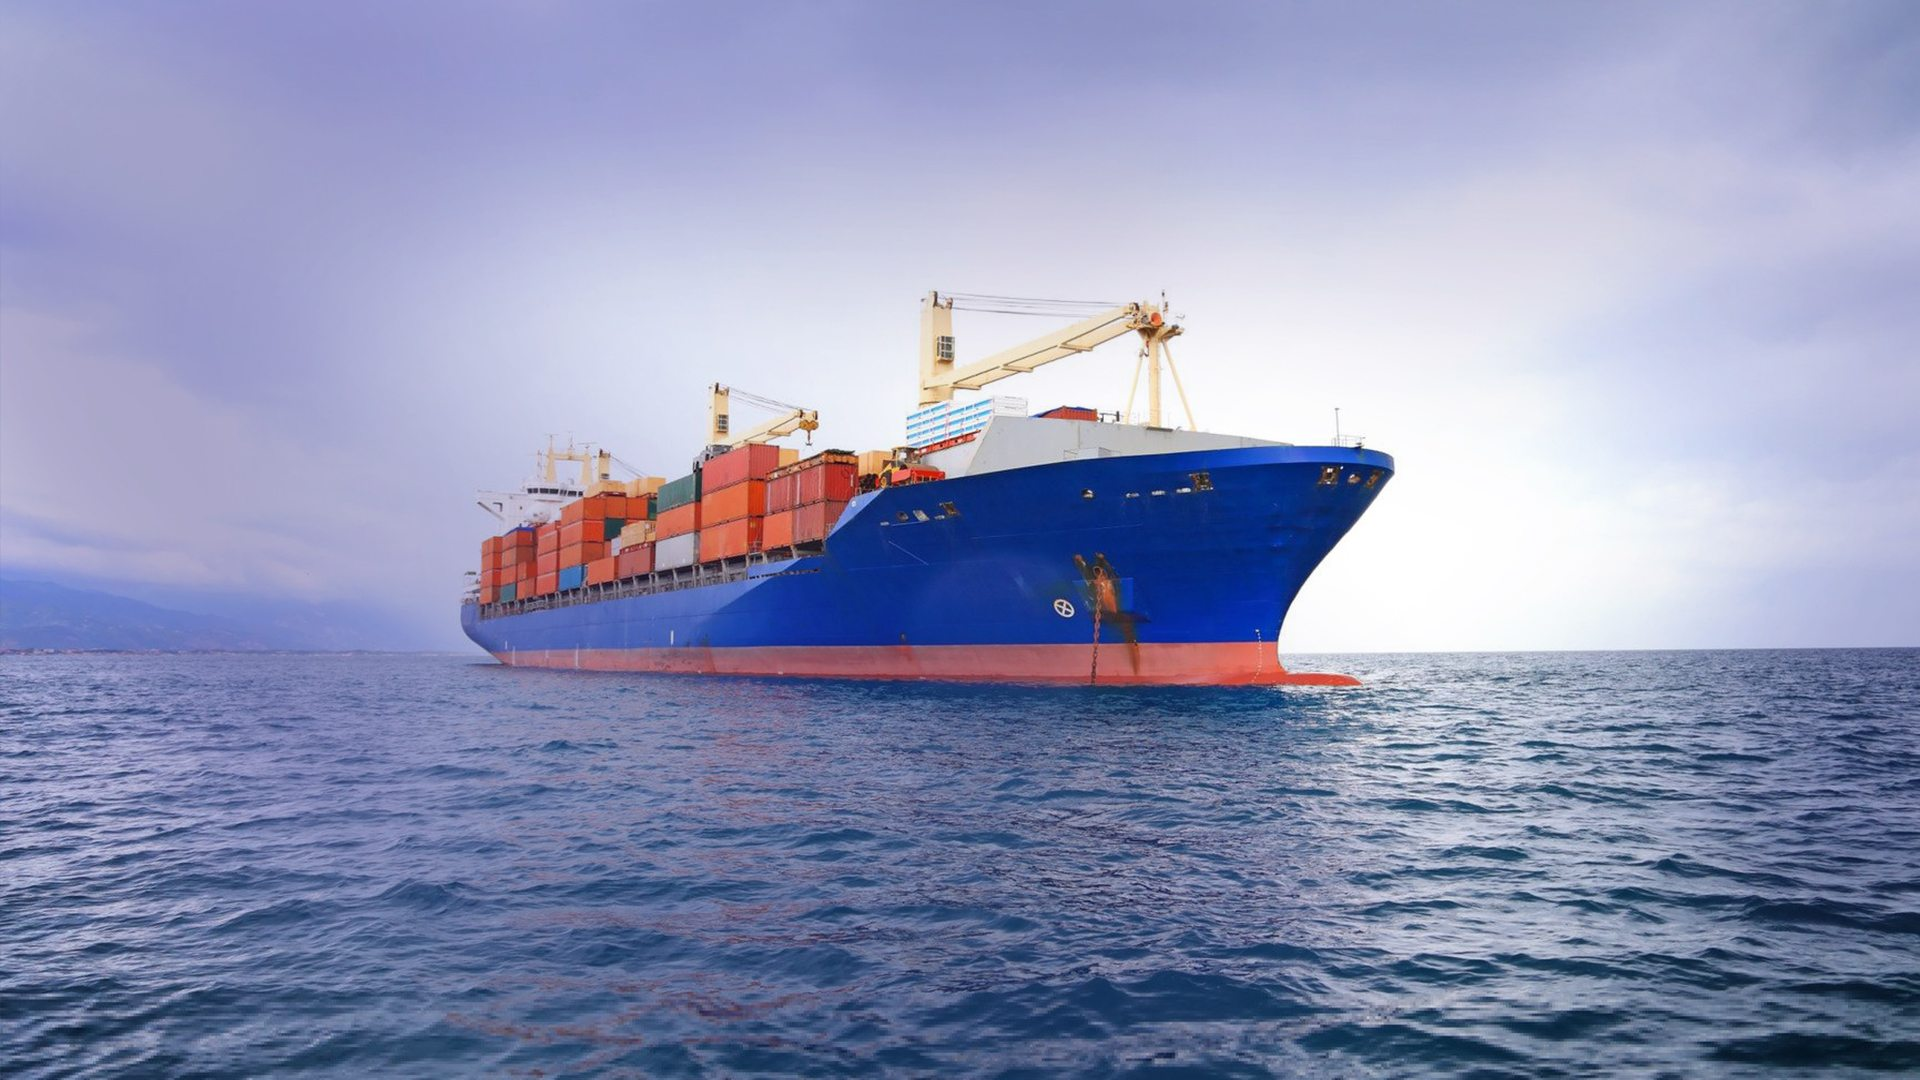 Marine Amp Shipping Agency In Sri Lanka Advantis Marine